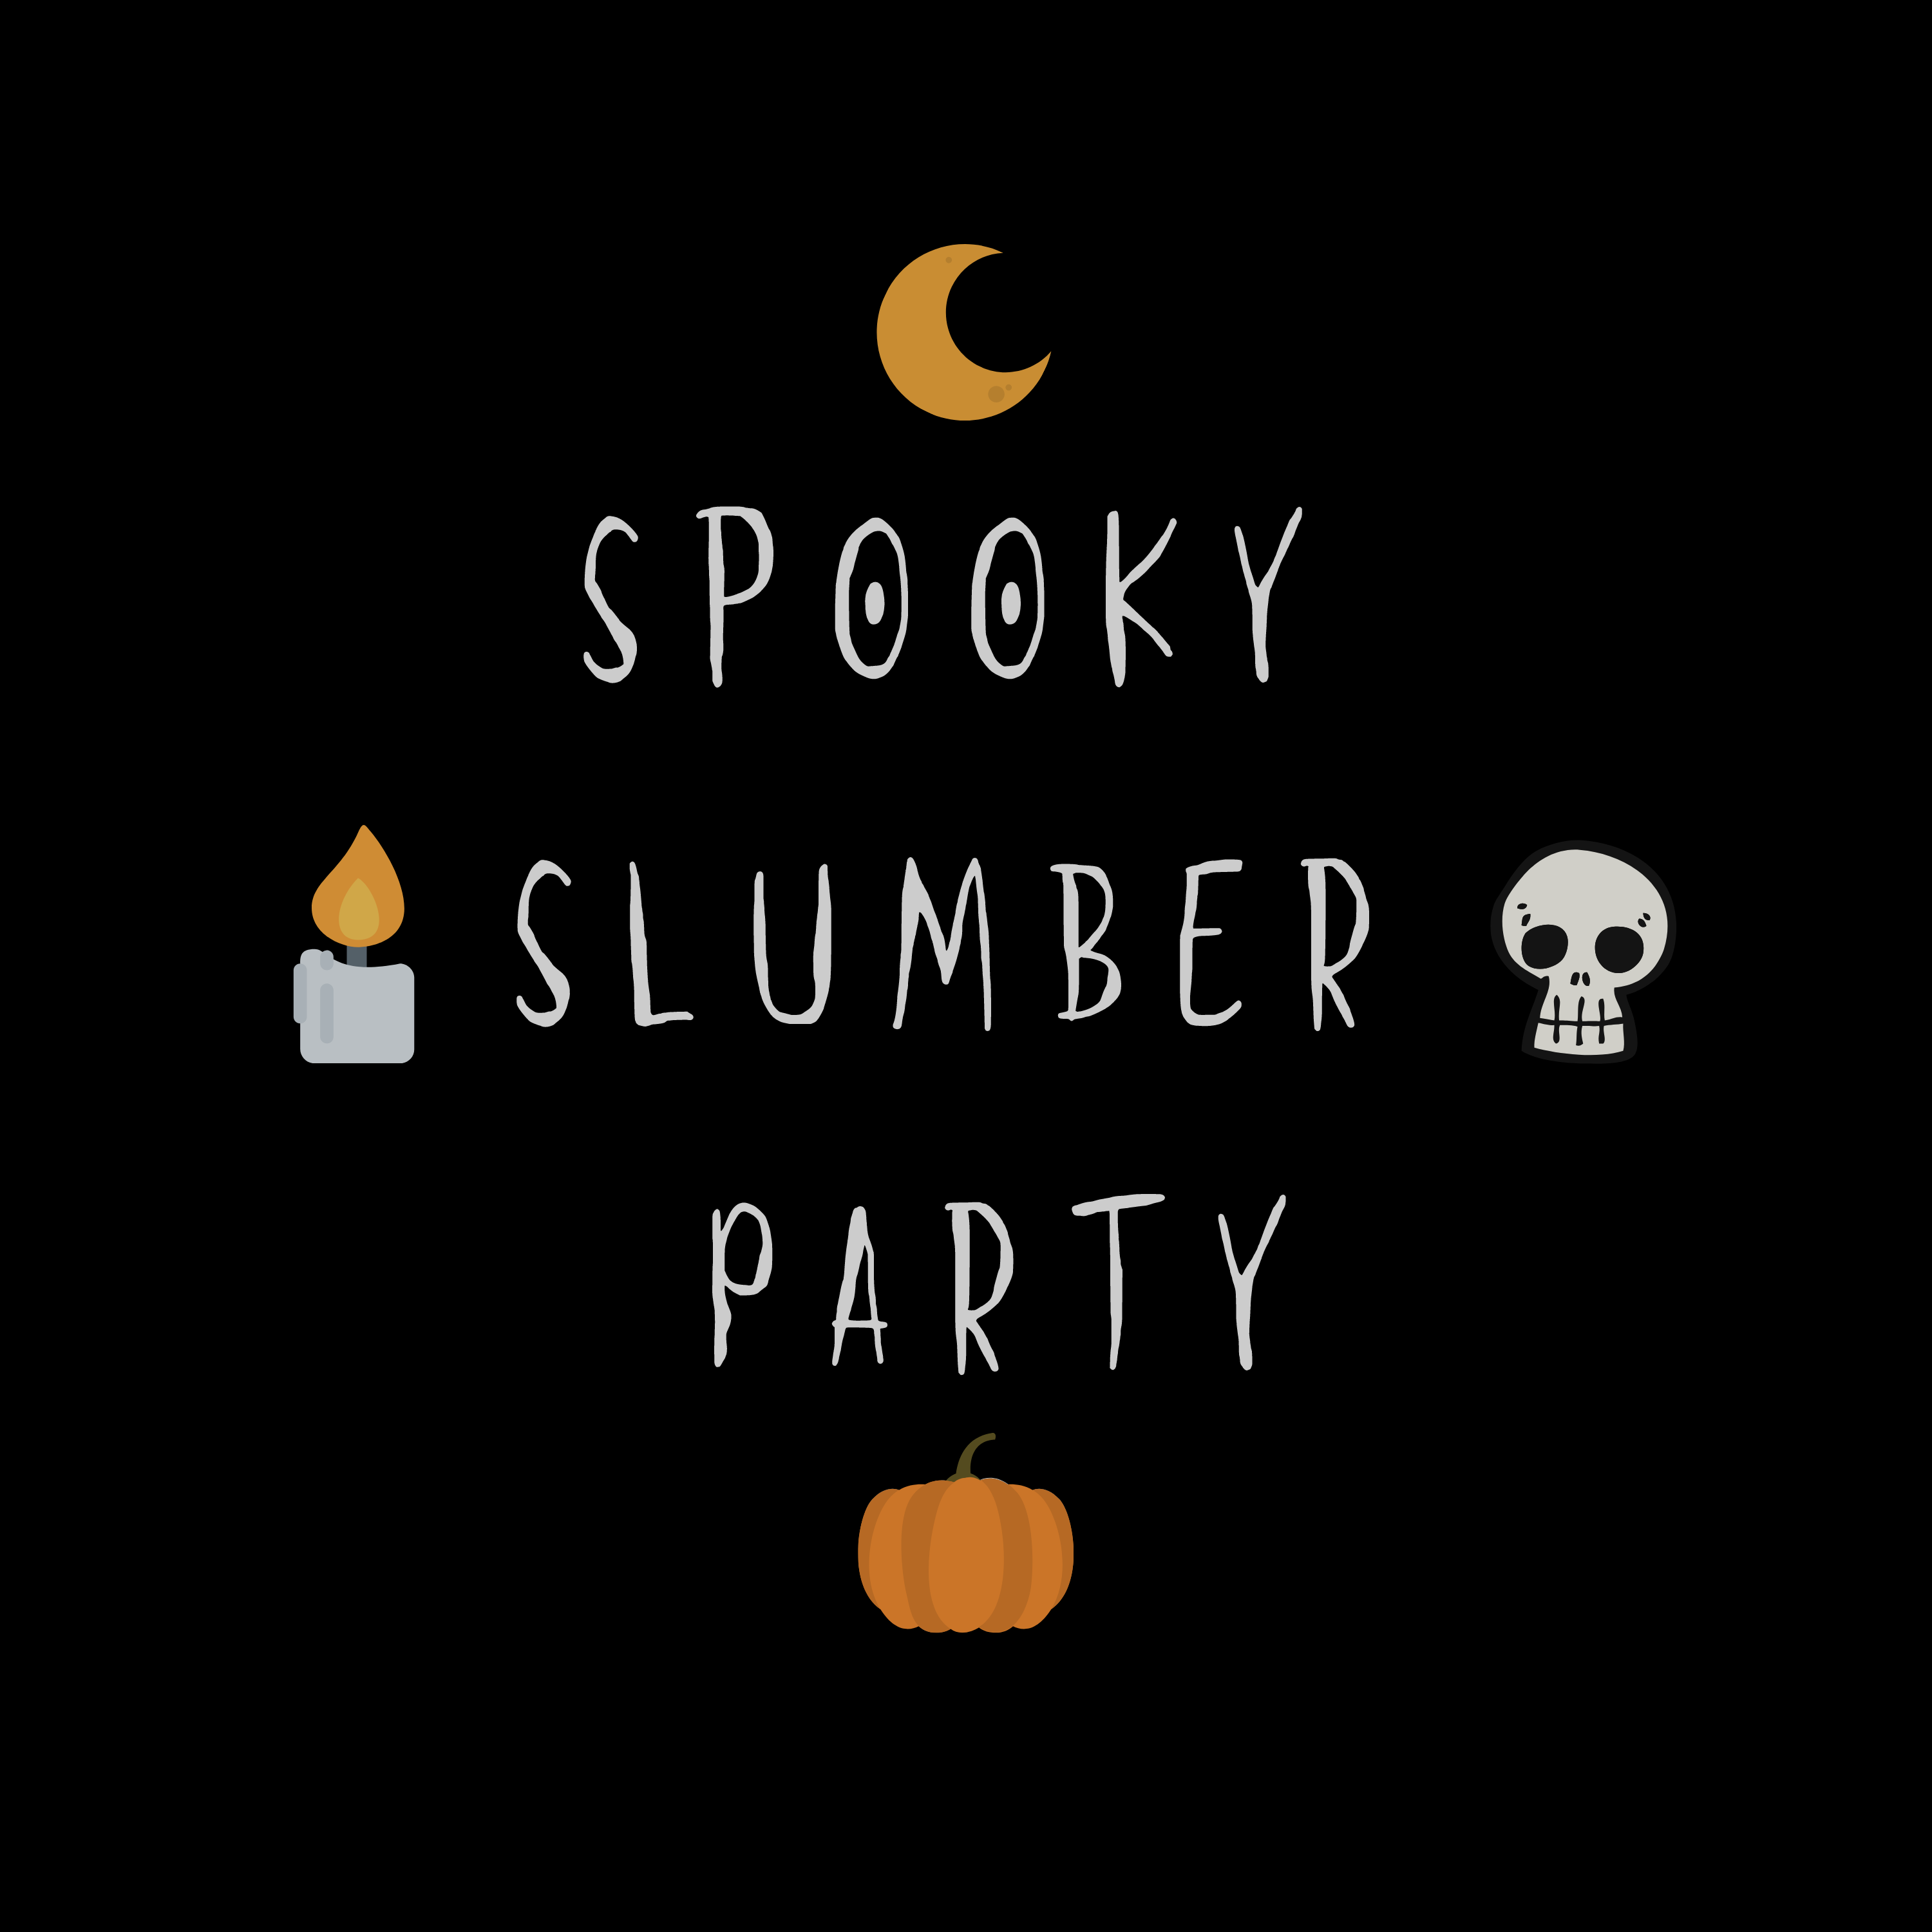 The Spooky Slumber Party